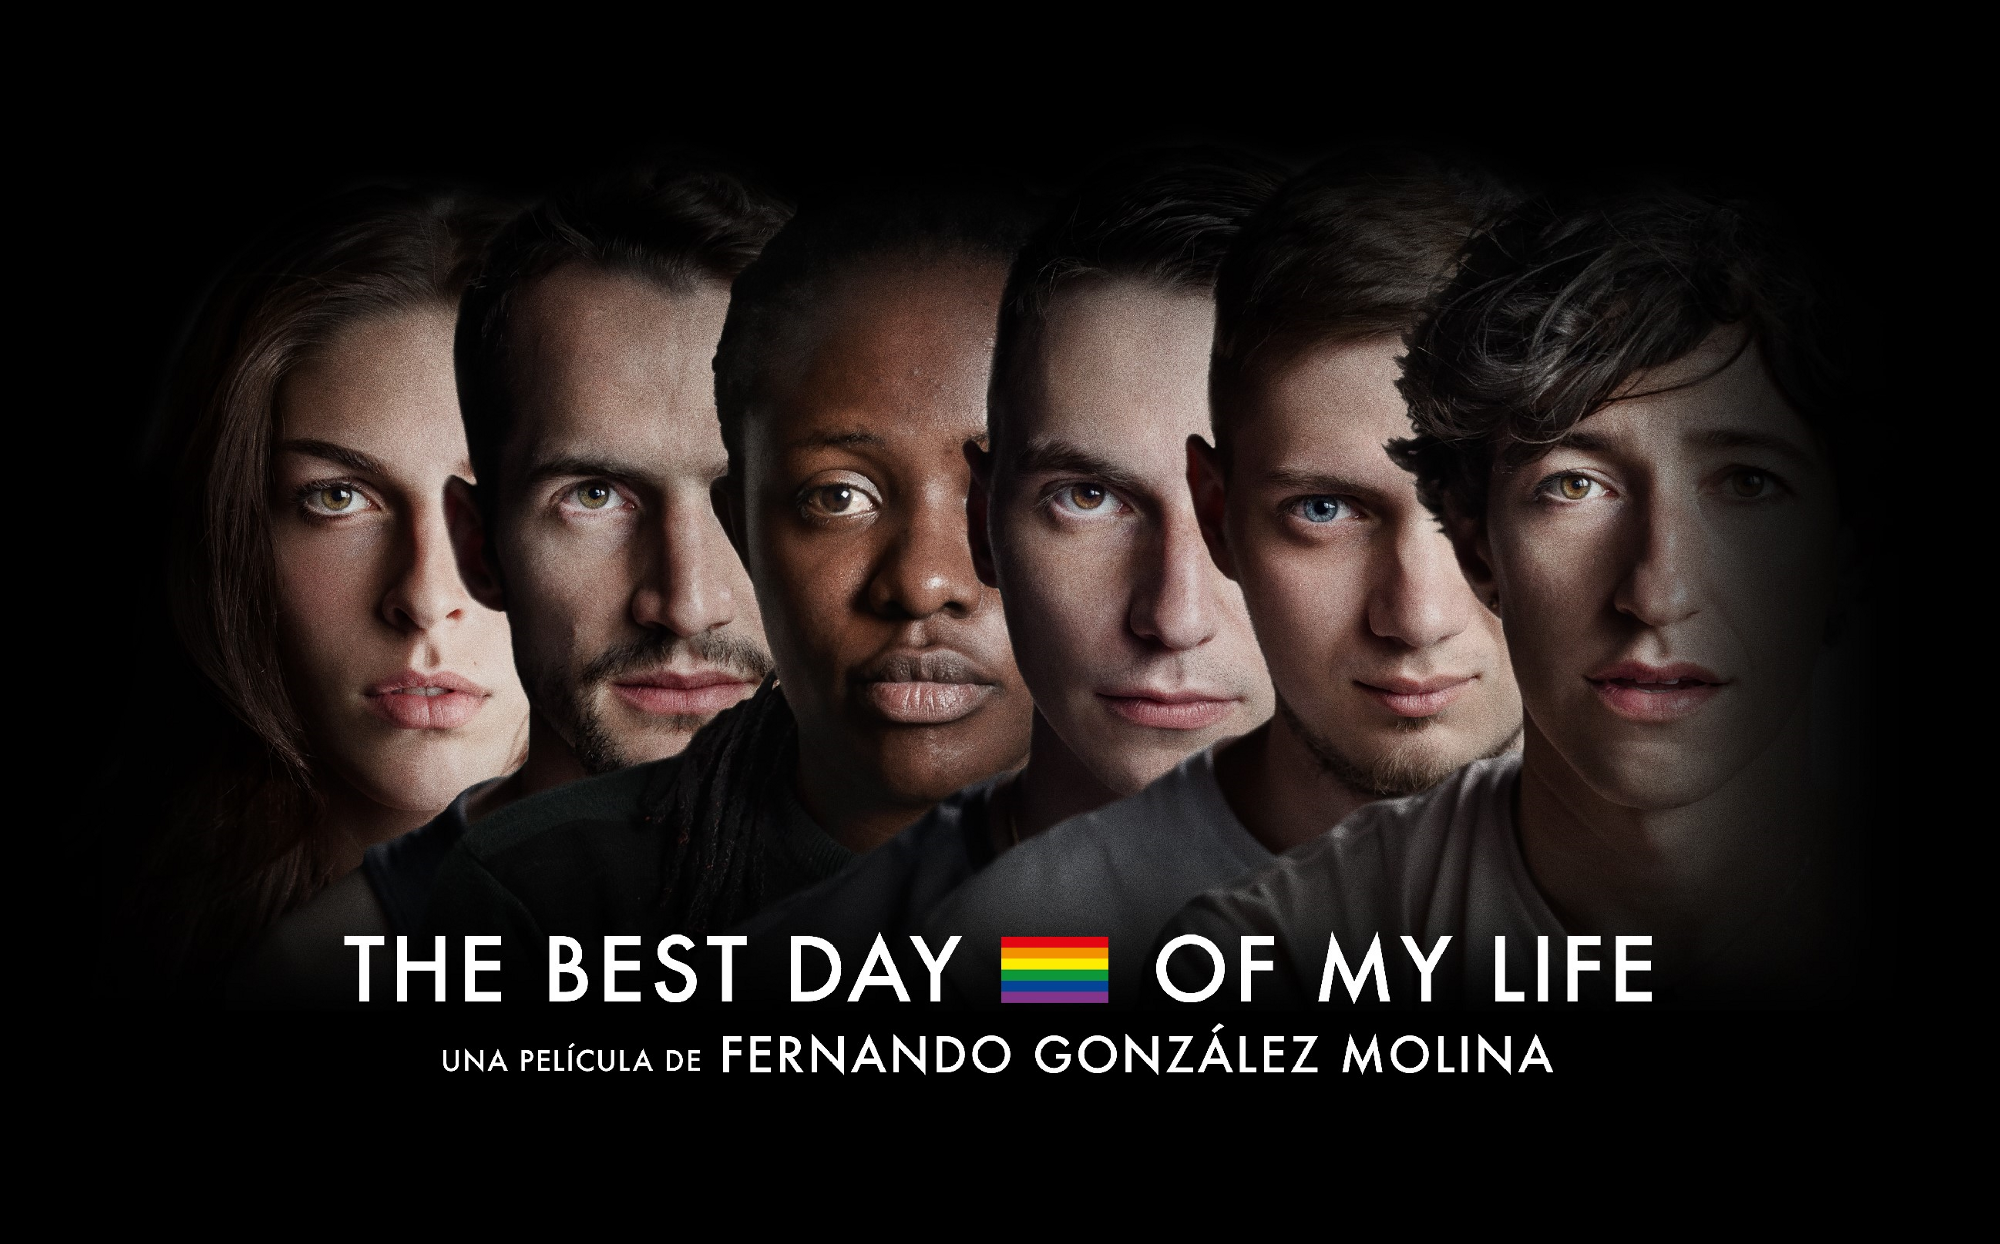 gay is My life